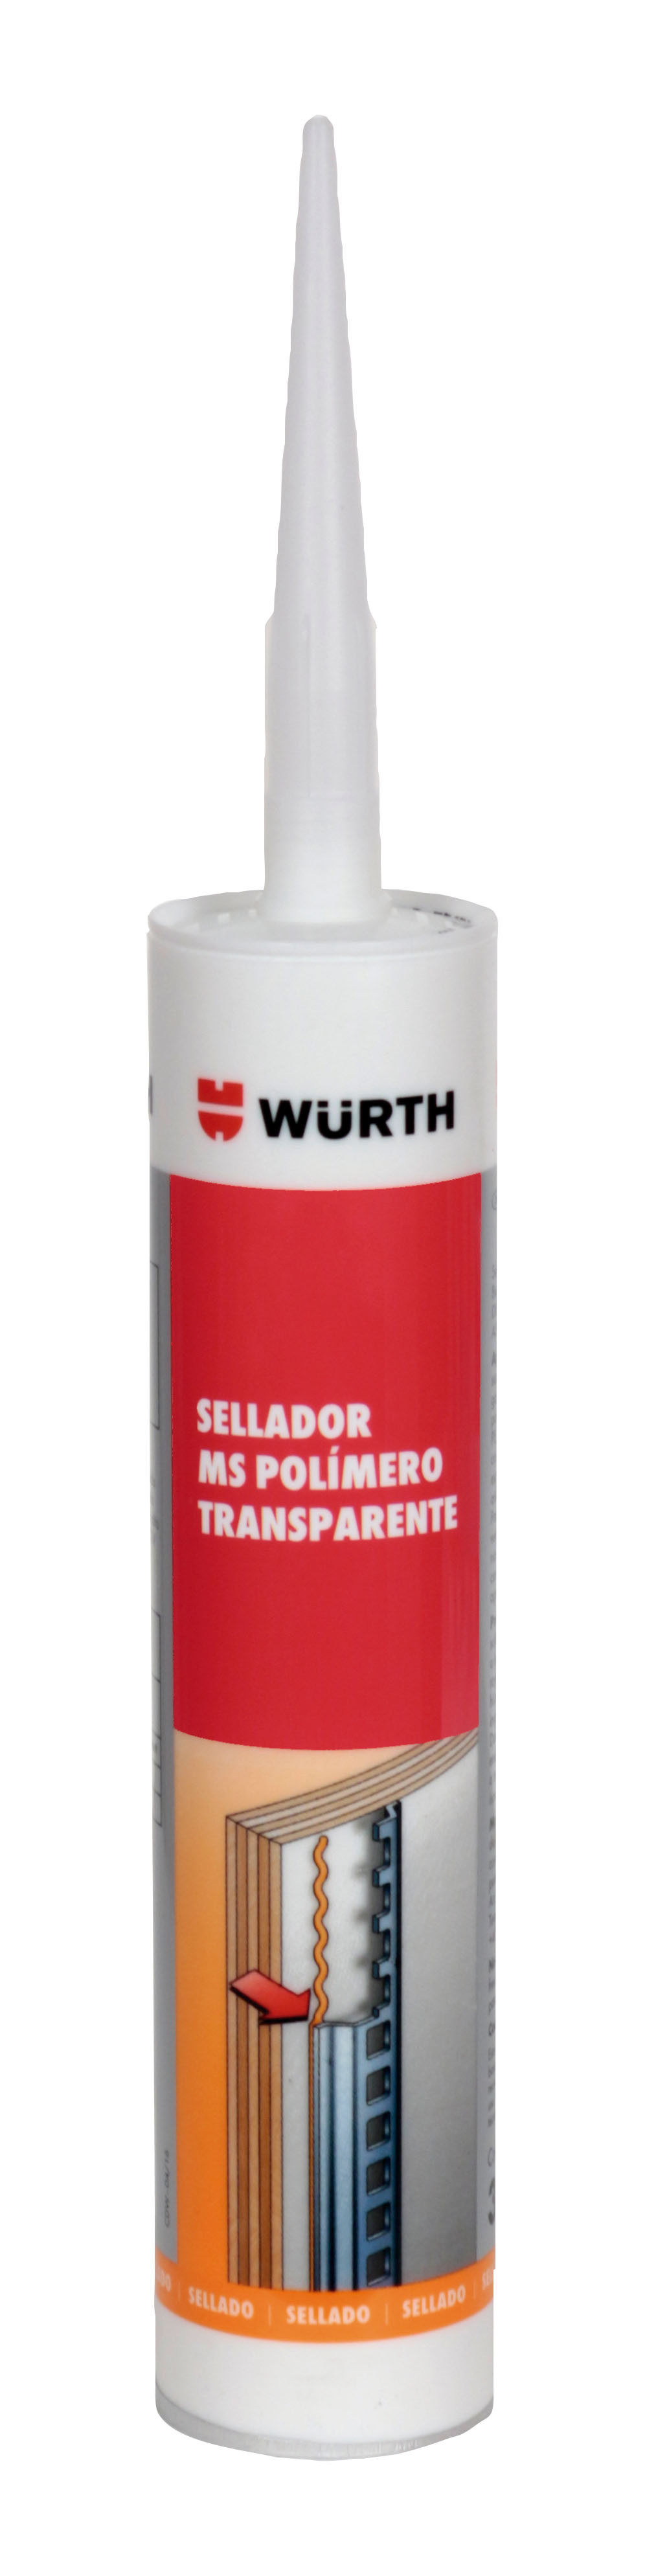 SELLADOR MS POLÍMERO TRANSPARENTE 310ML